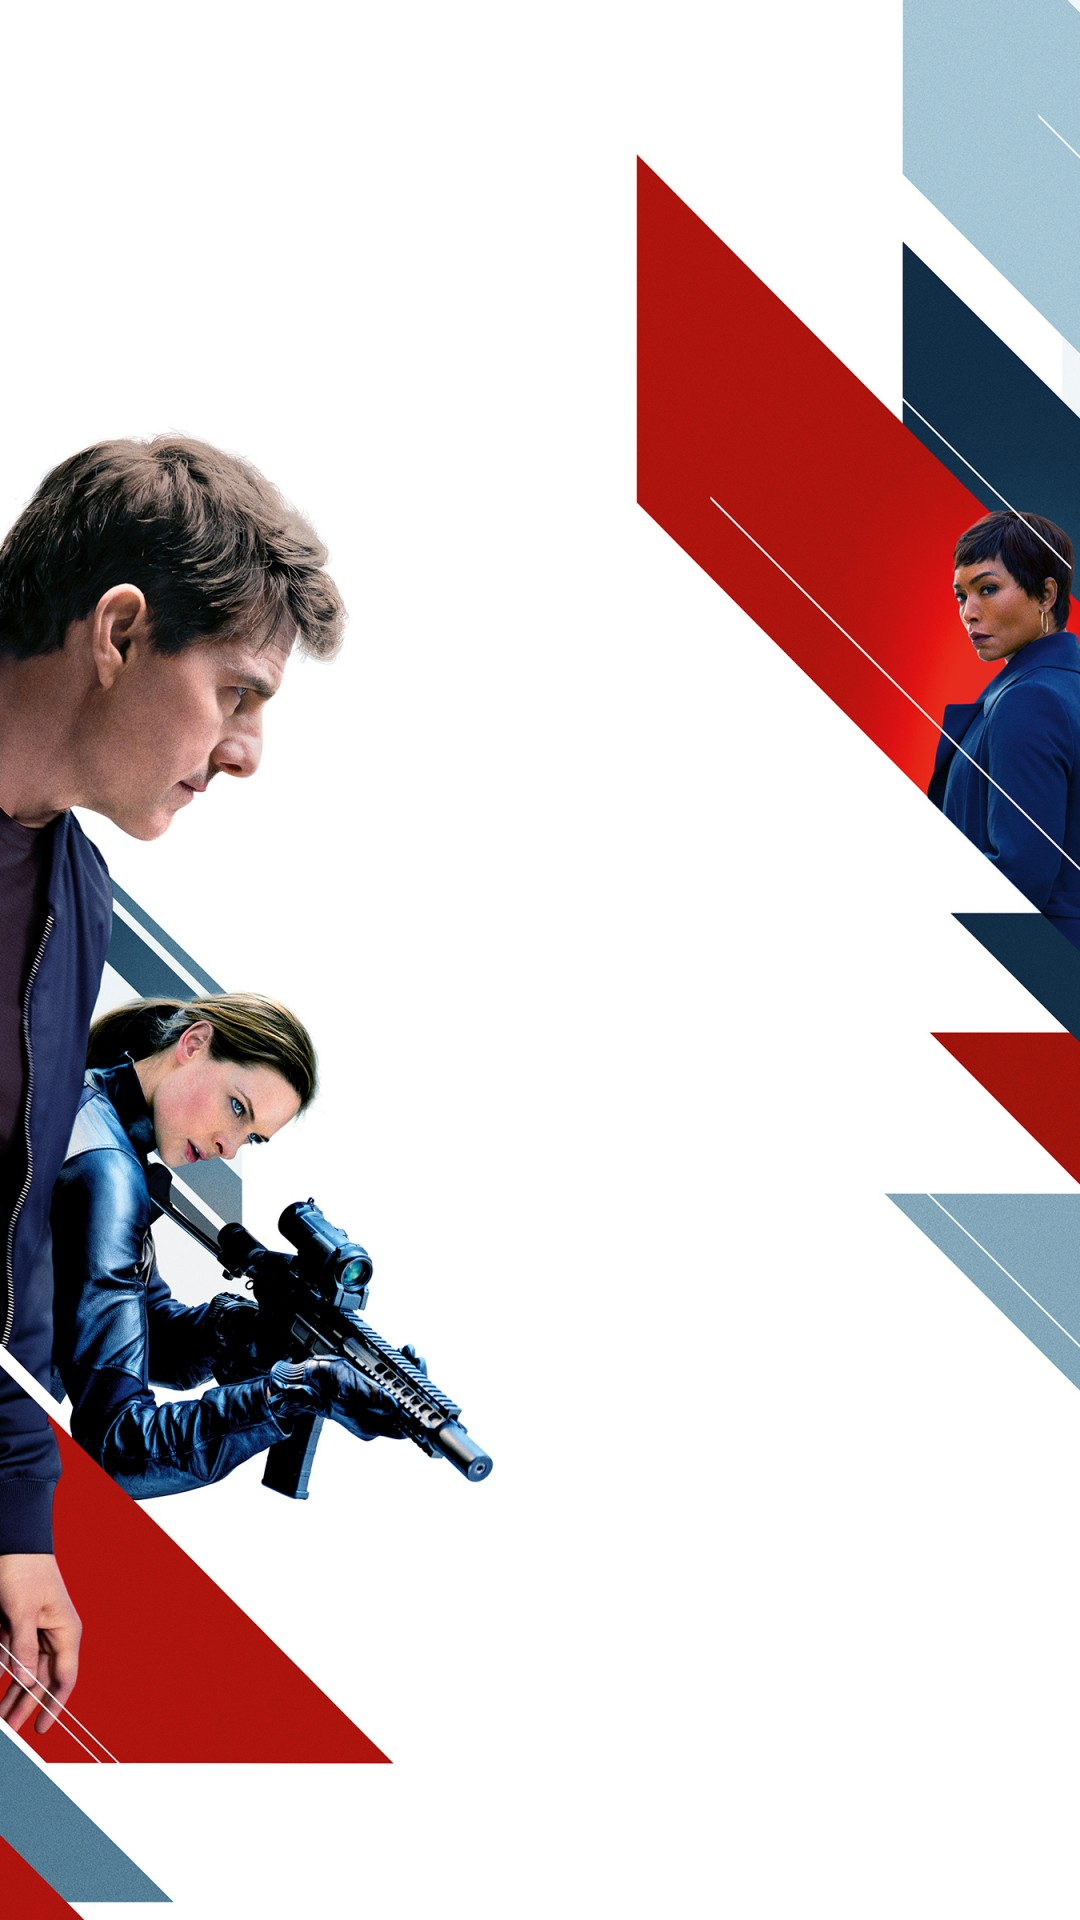 Mission Impossible Fallout 2018 Movie Wallpaper Iphone 6